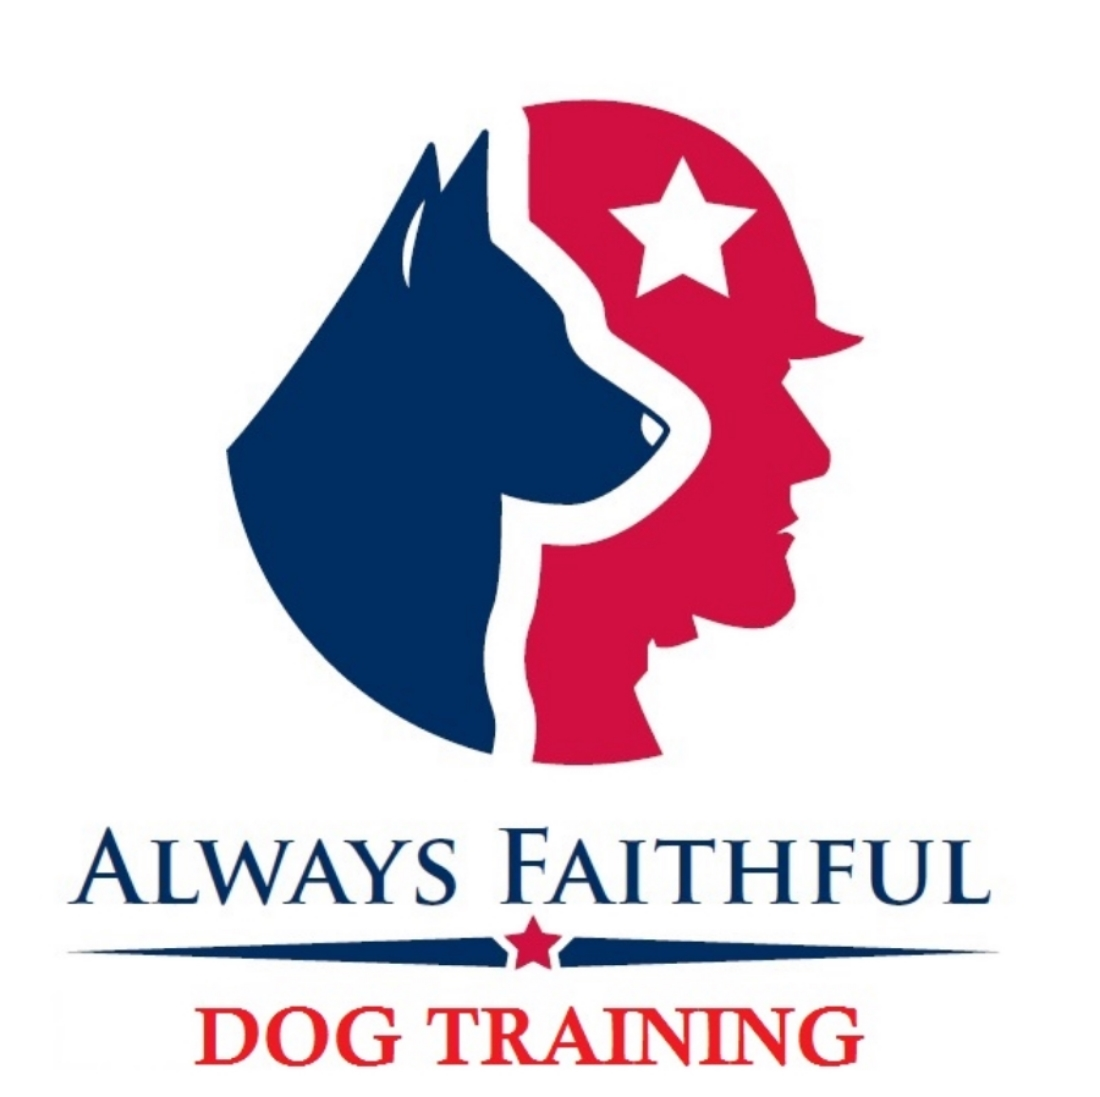 Always Faithful Dog Training